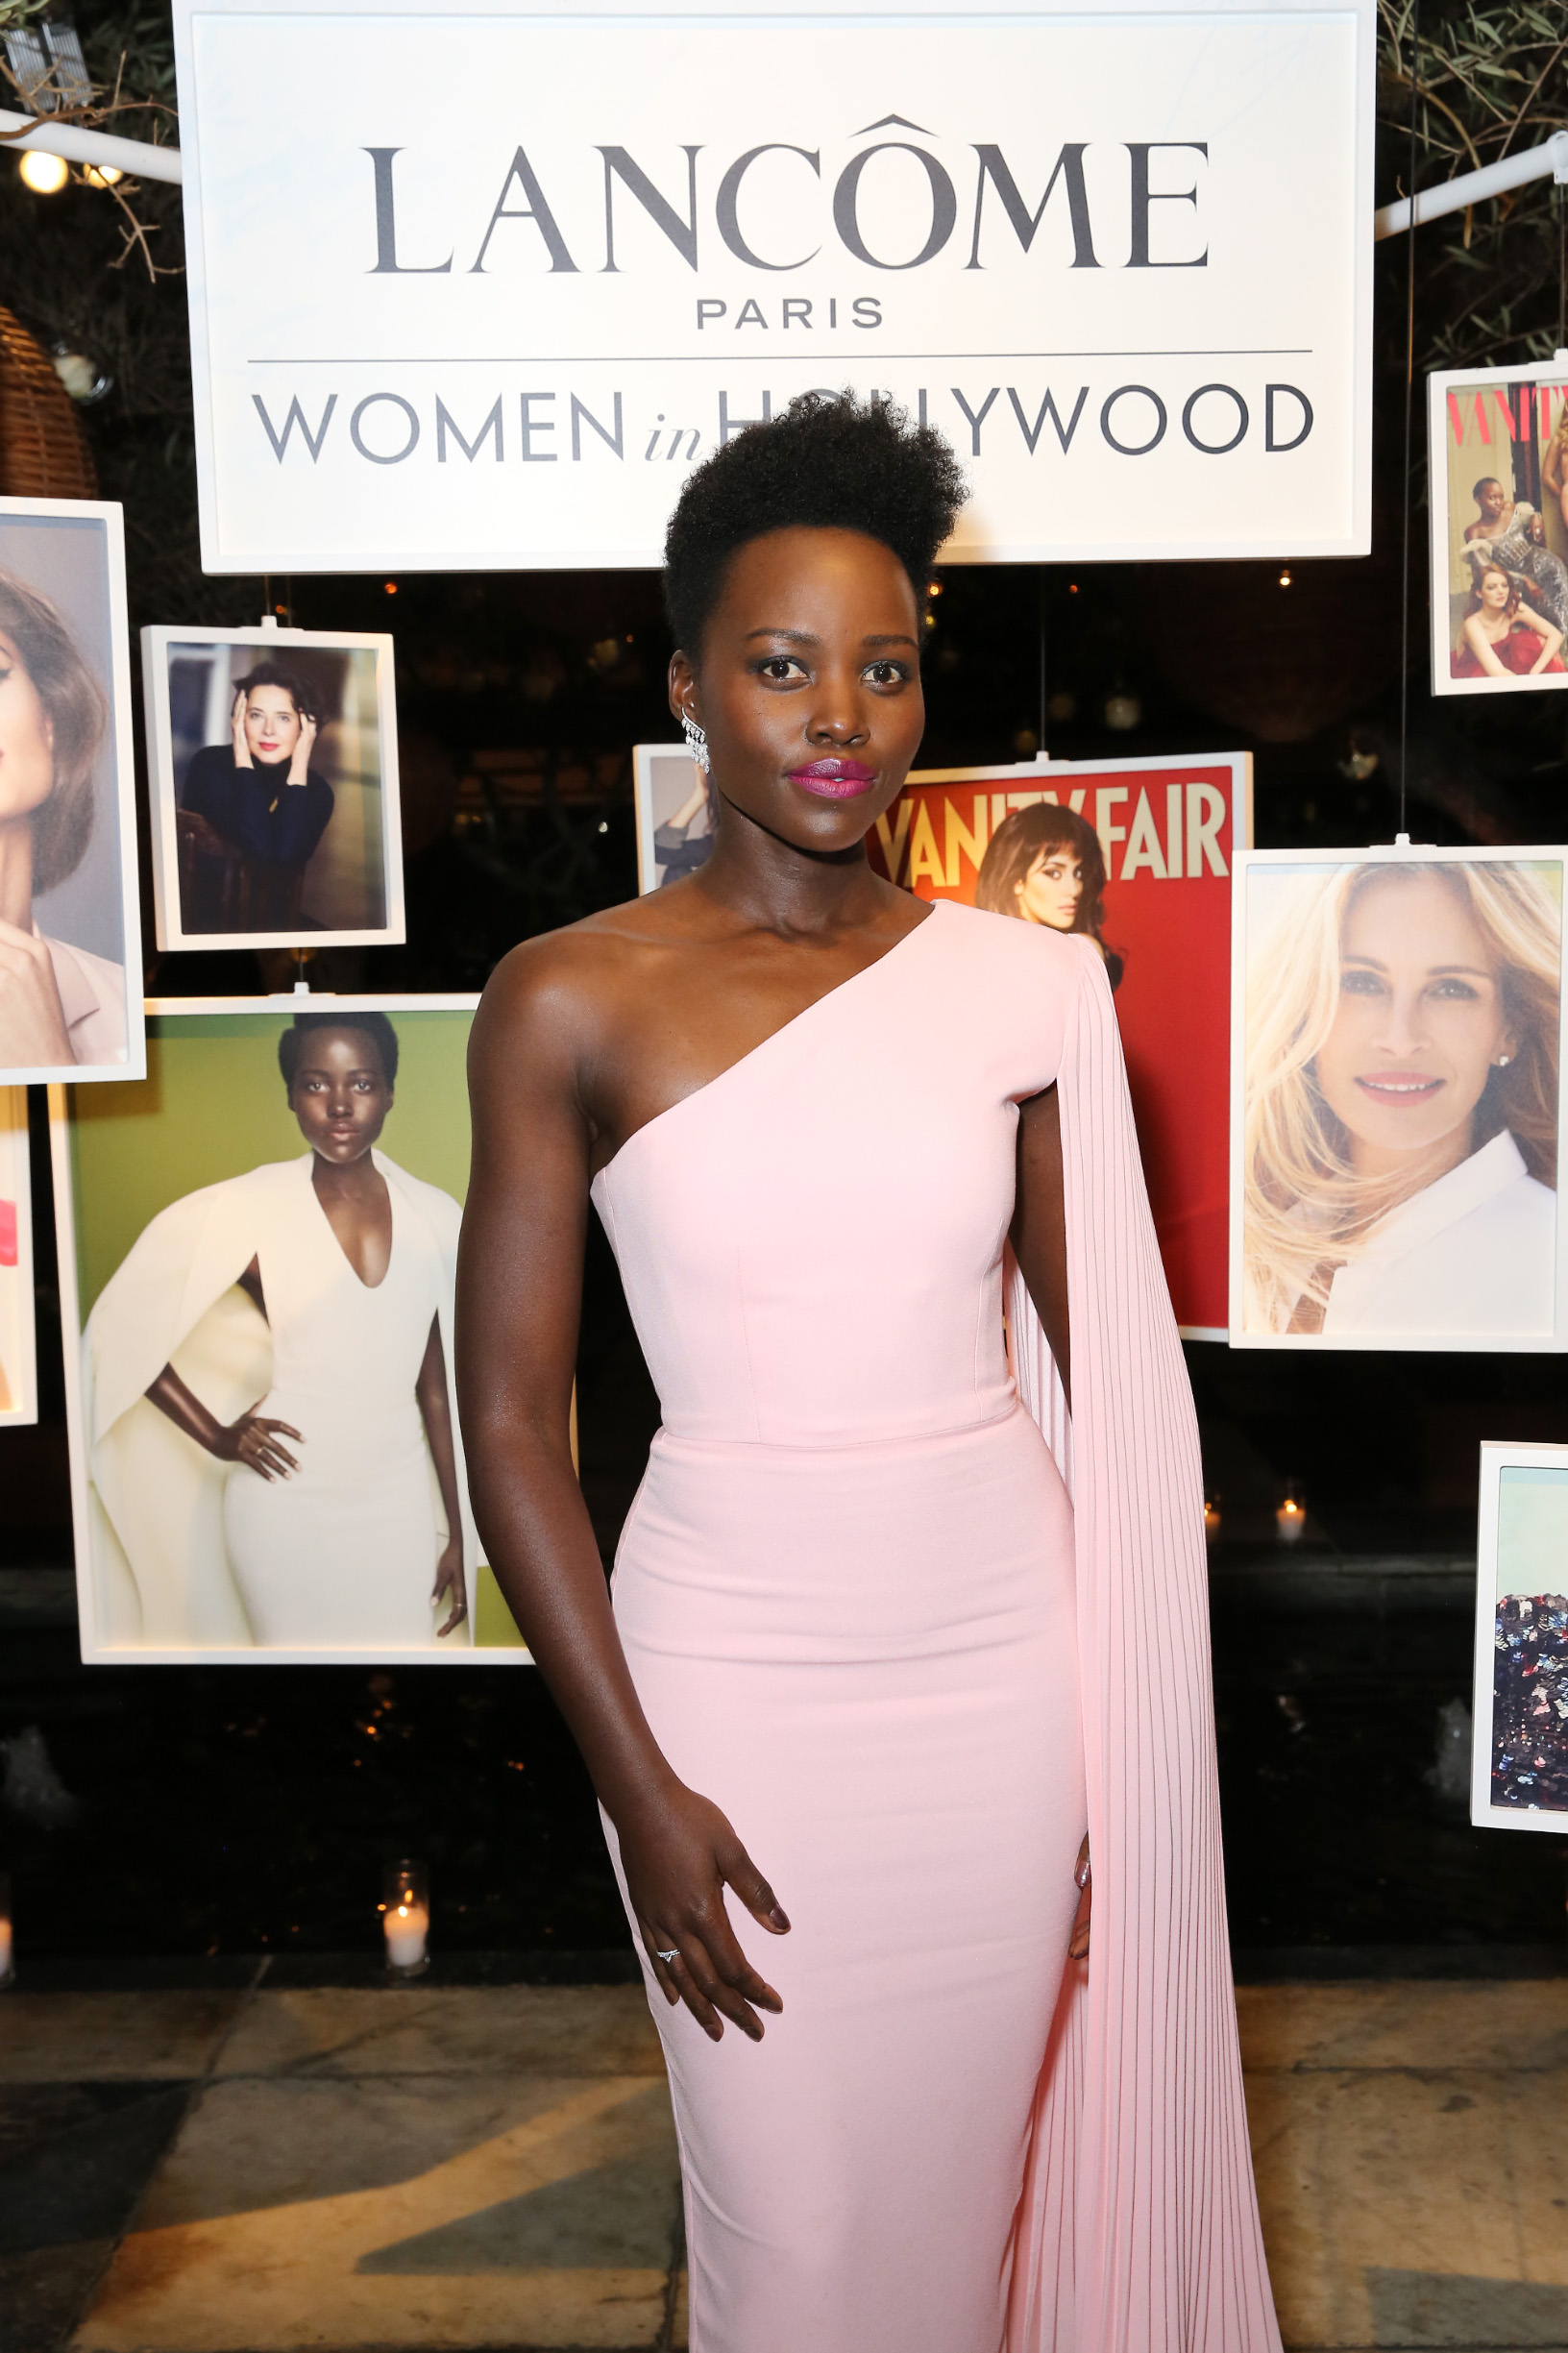 WEST HOLLYWOOD, CALIFORNIA - FEBRUARY 21: Lupita Nyong'o attends Vanity Fair and Lancôme Toast Women In Hollywood on February 21, 2019 in West Hollywood, California. (Photo by Rachel Murray/Getty Images for Vanity Fair)